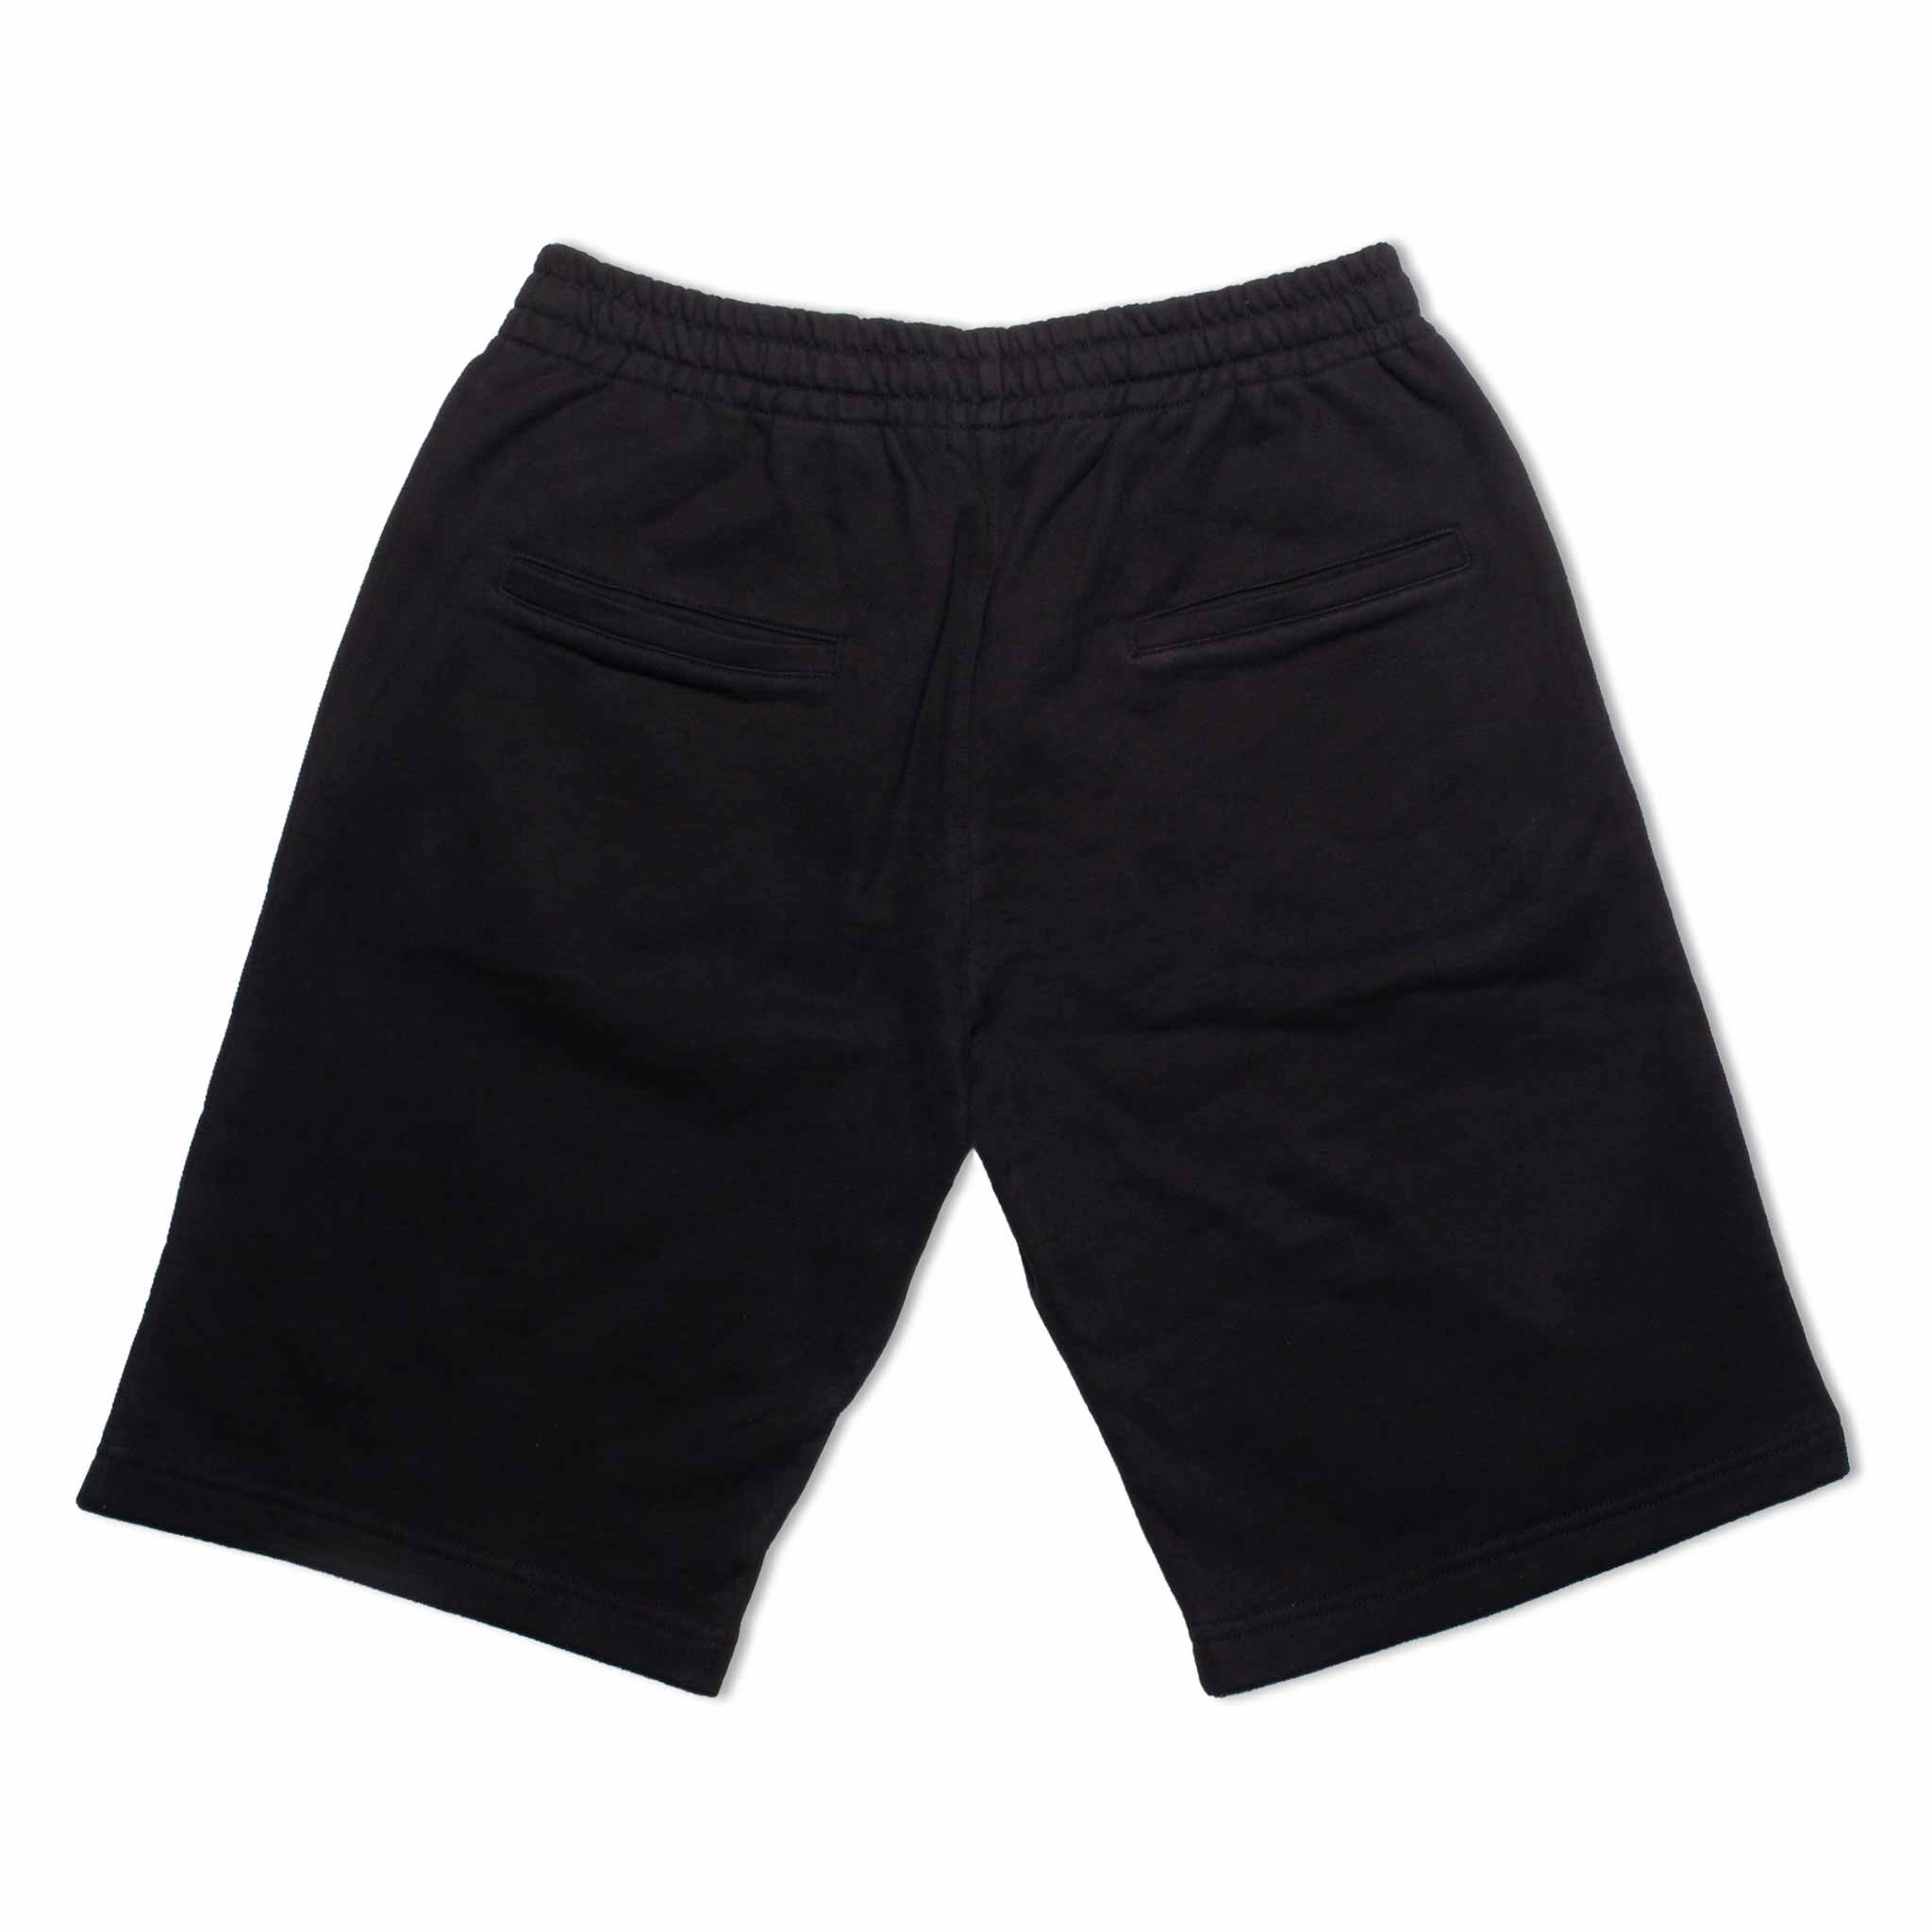 HOMME+ Embroidery Shorts Black